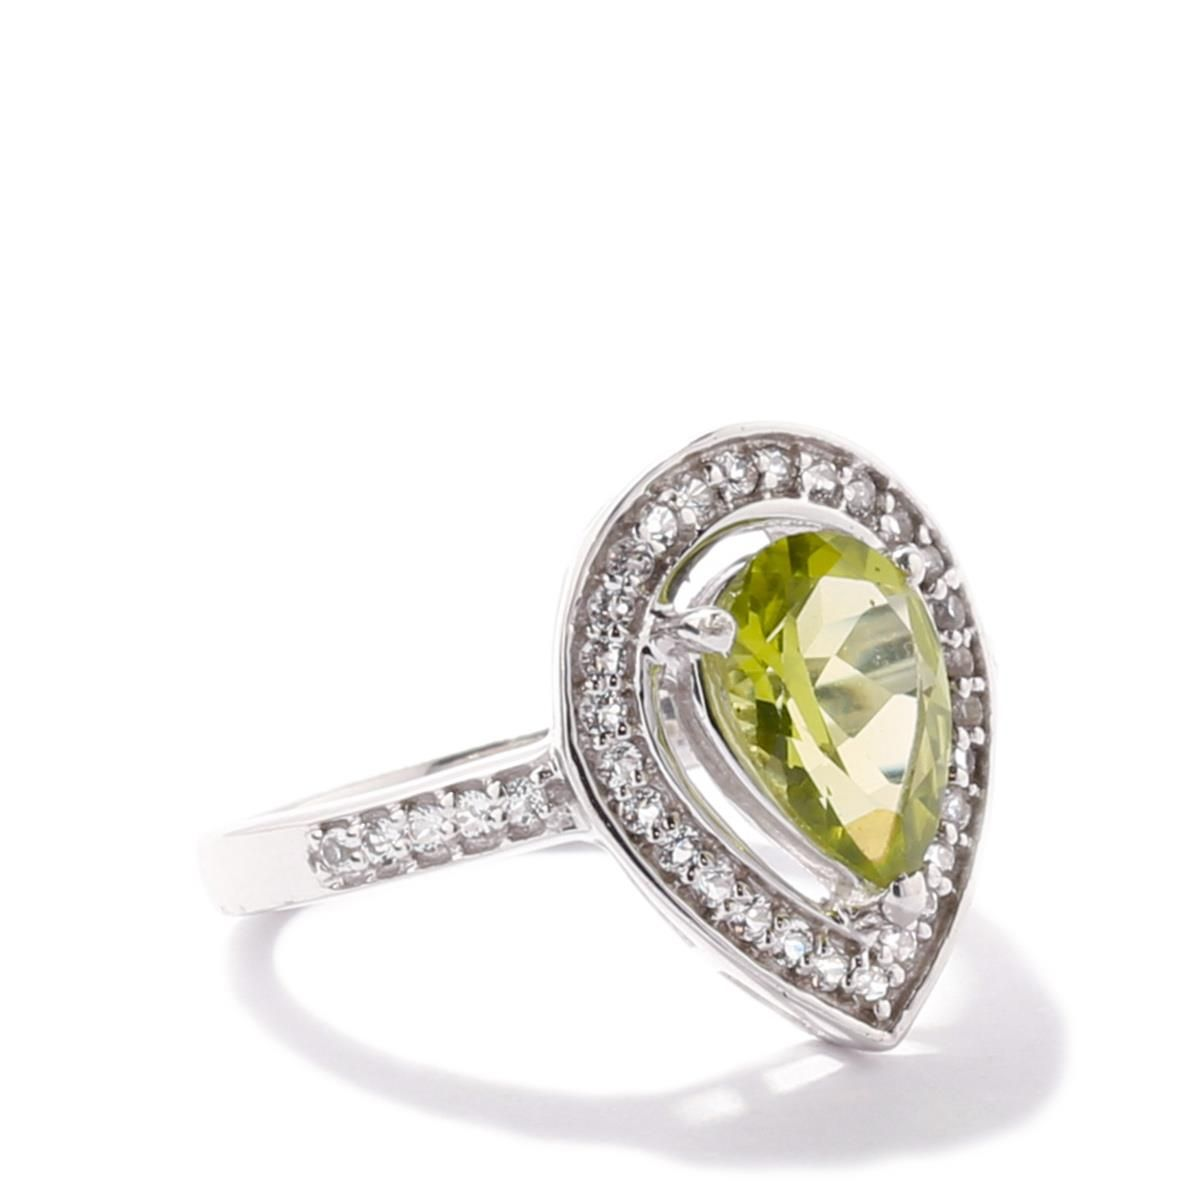 Changbai Peridot Ring with White Topaz in Sterling Silver 2.34cts